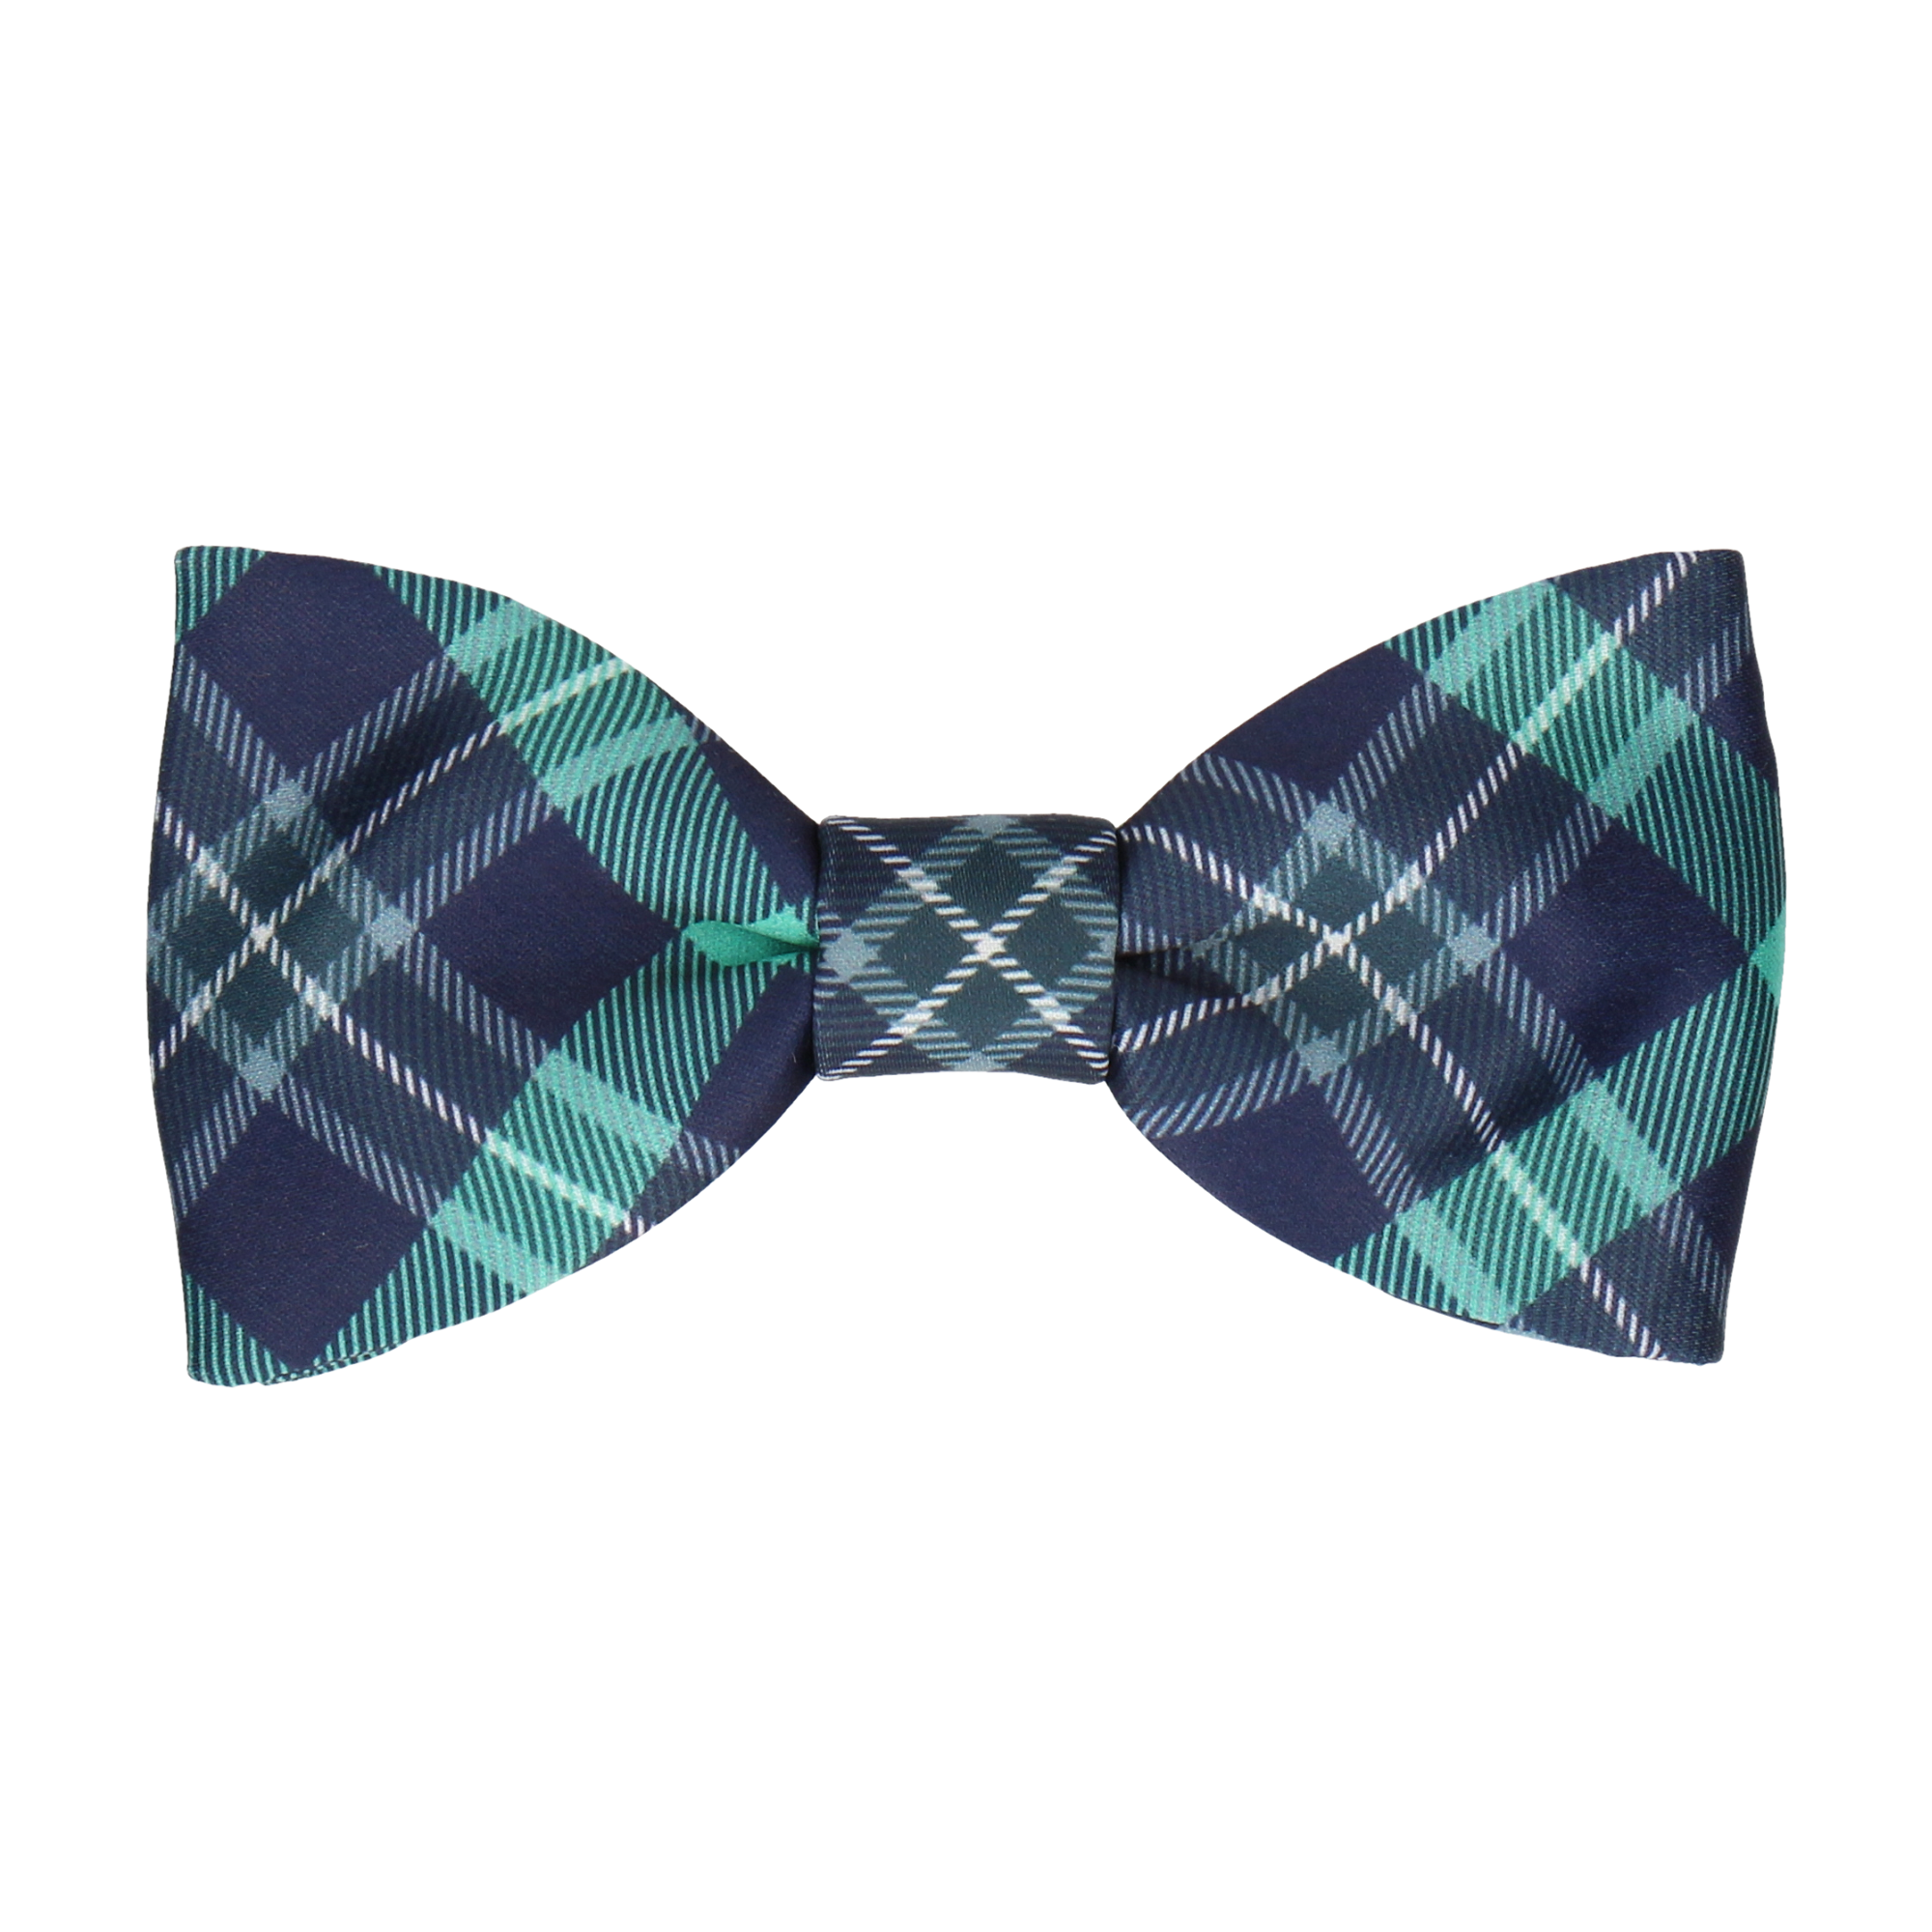 McEwen in Green Bow Tie